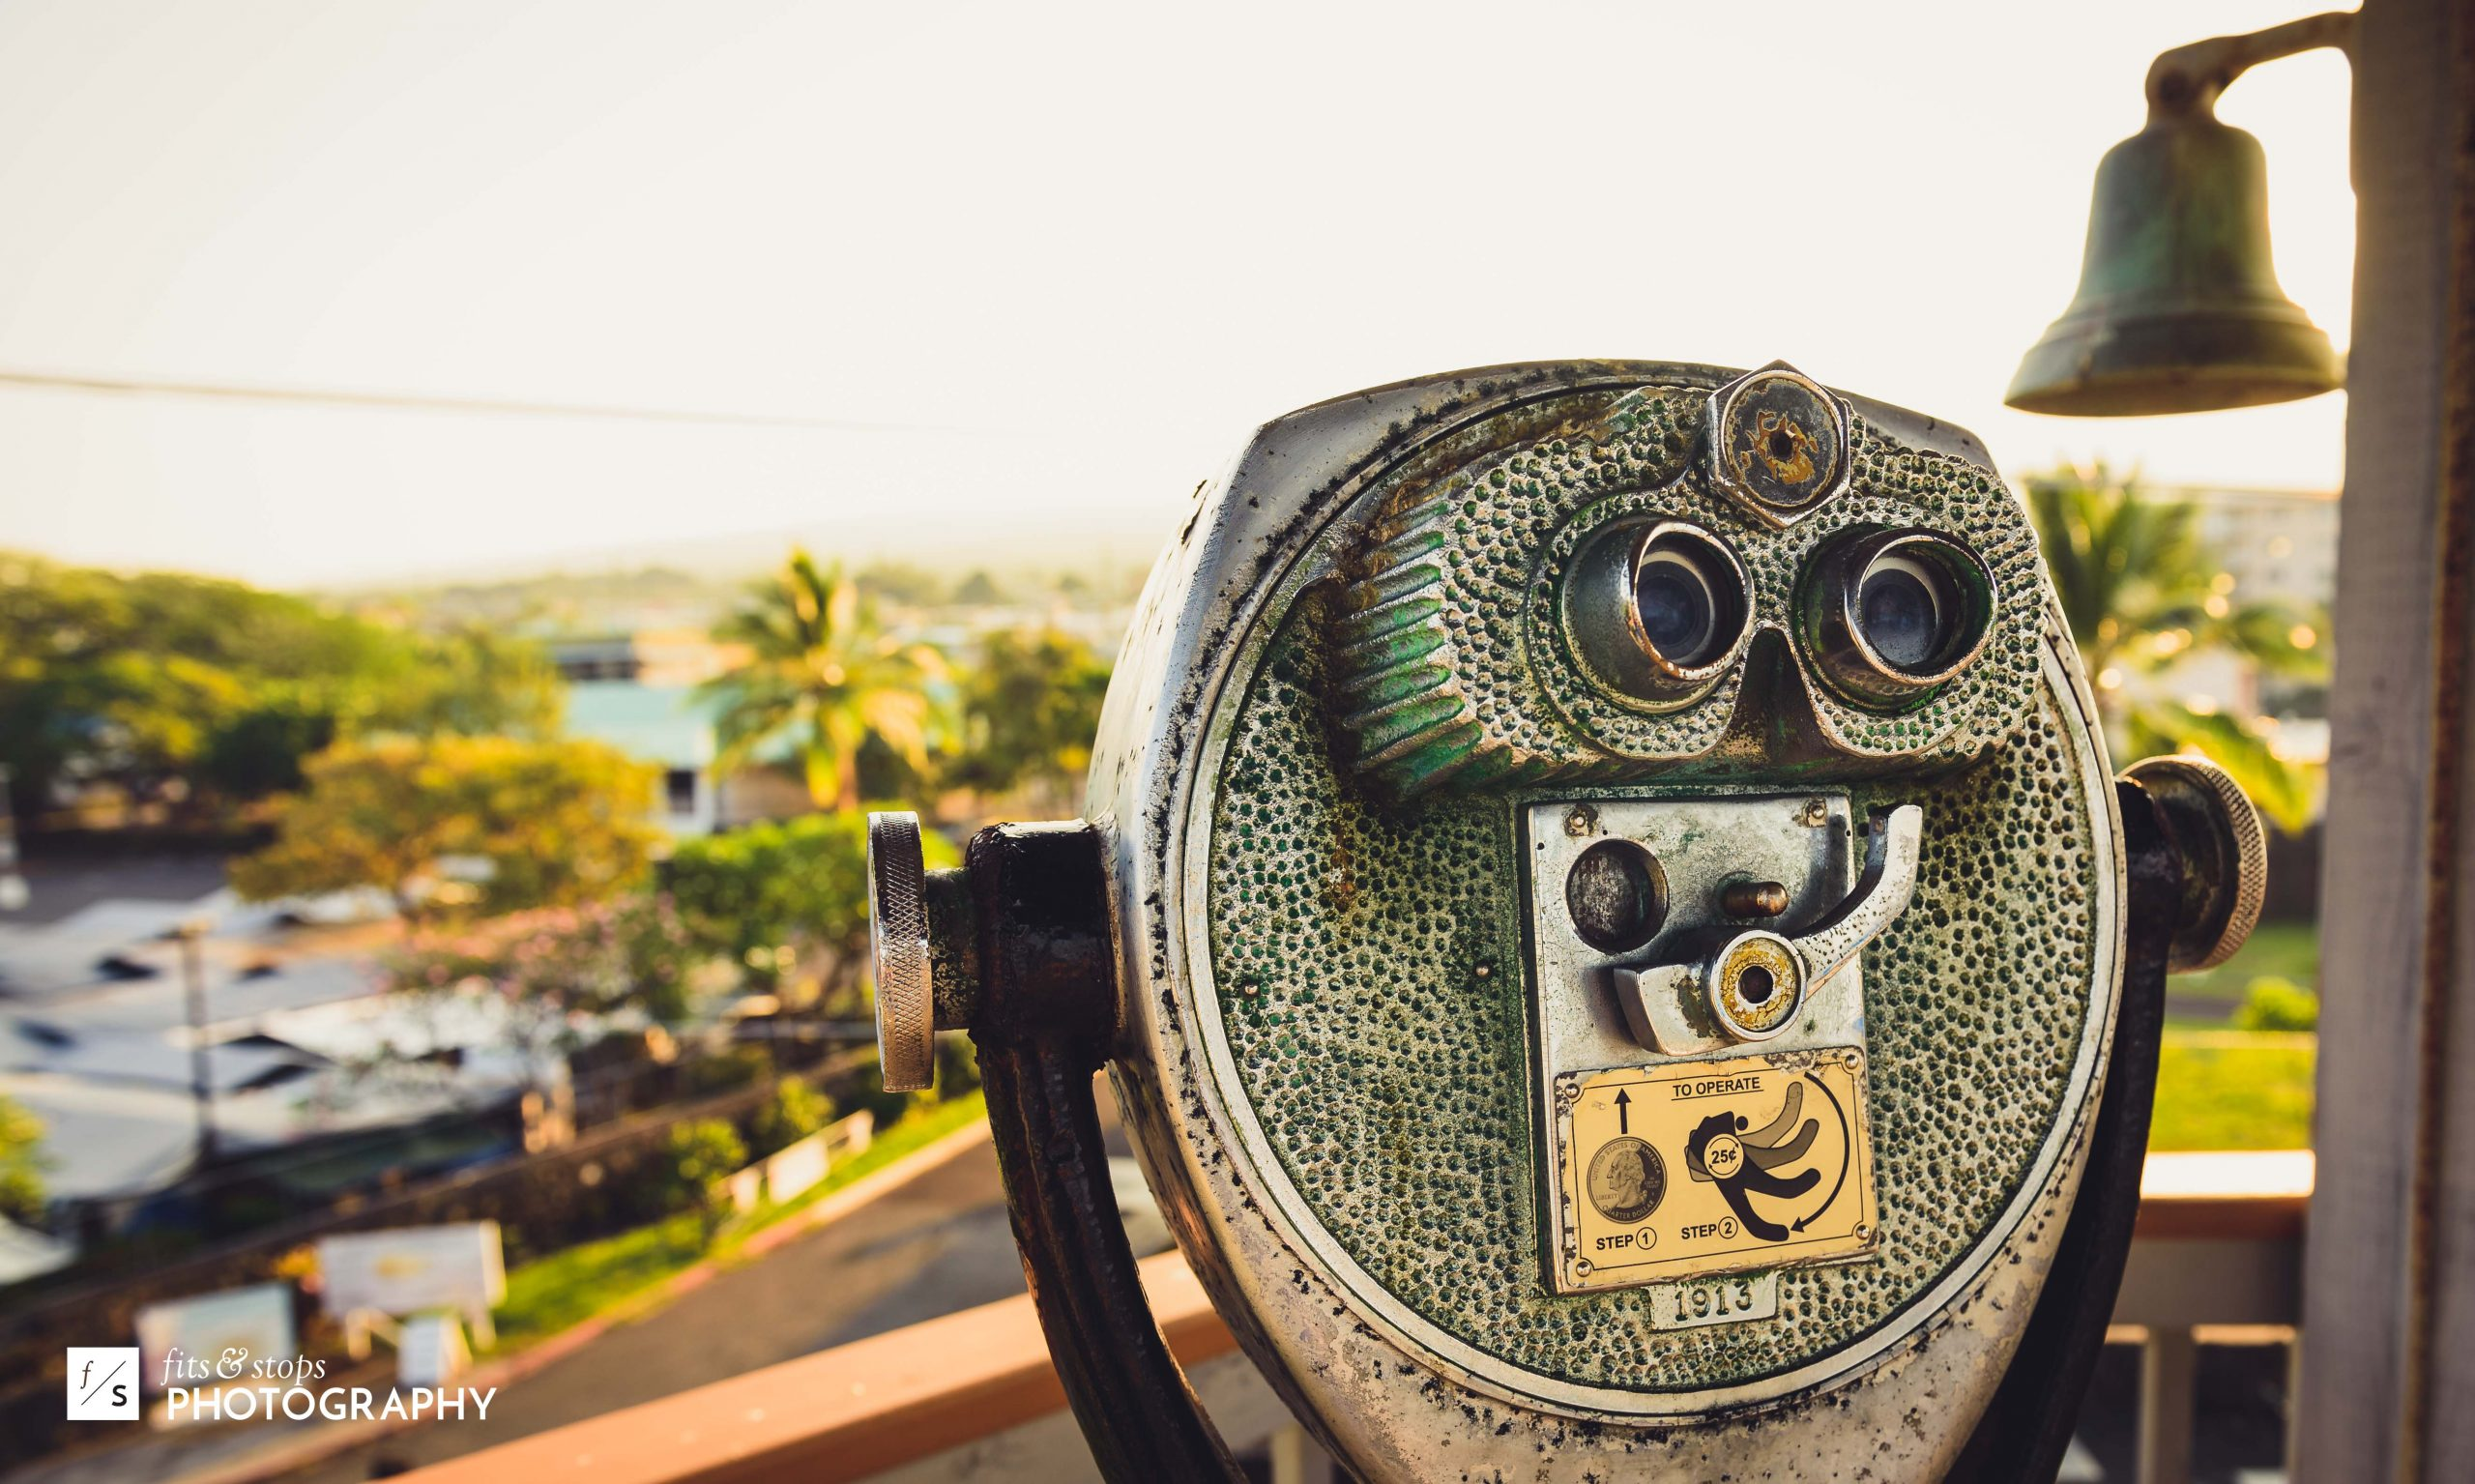 A shallow depth of field photograph of a vintage coin-operated telescope, peering out over a Hawaiian landscape in the town of Kailua.